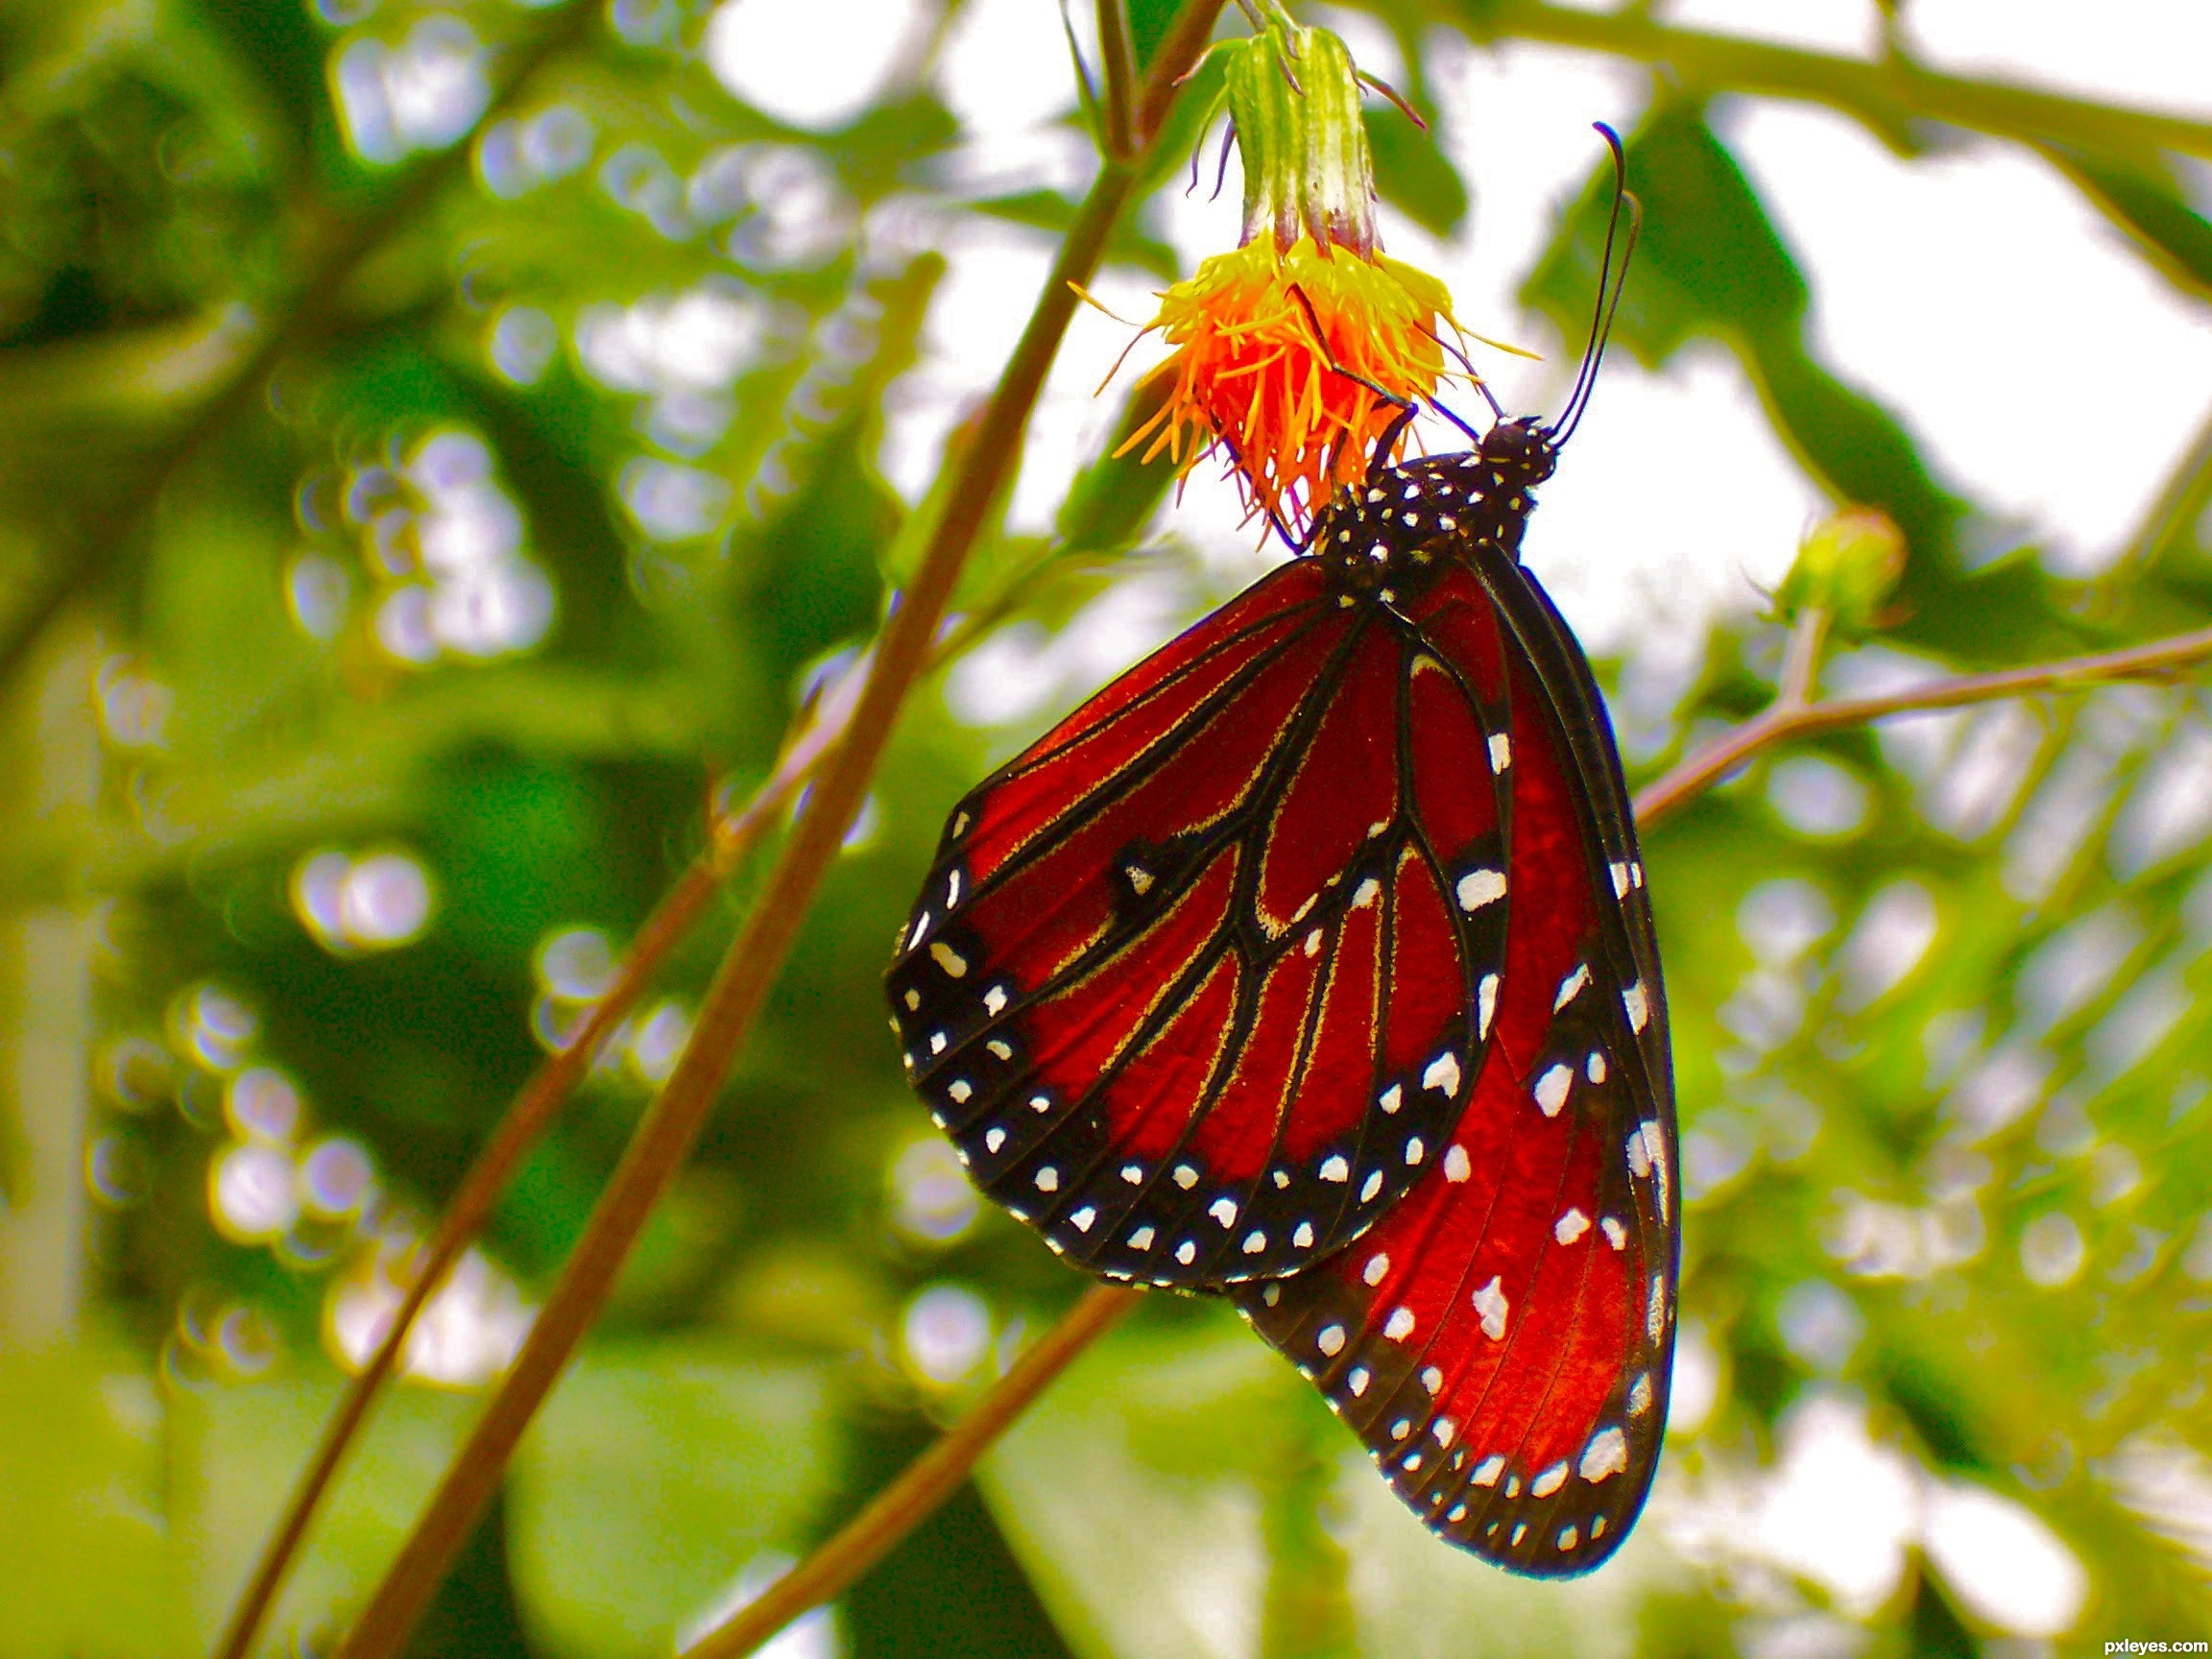 Res: 2304x1728, Red Butterfly Wallpaper